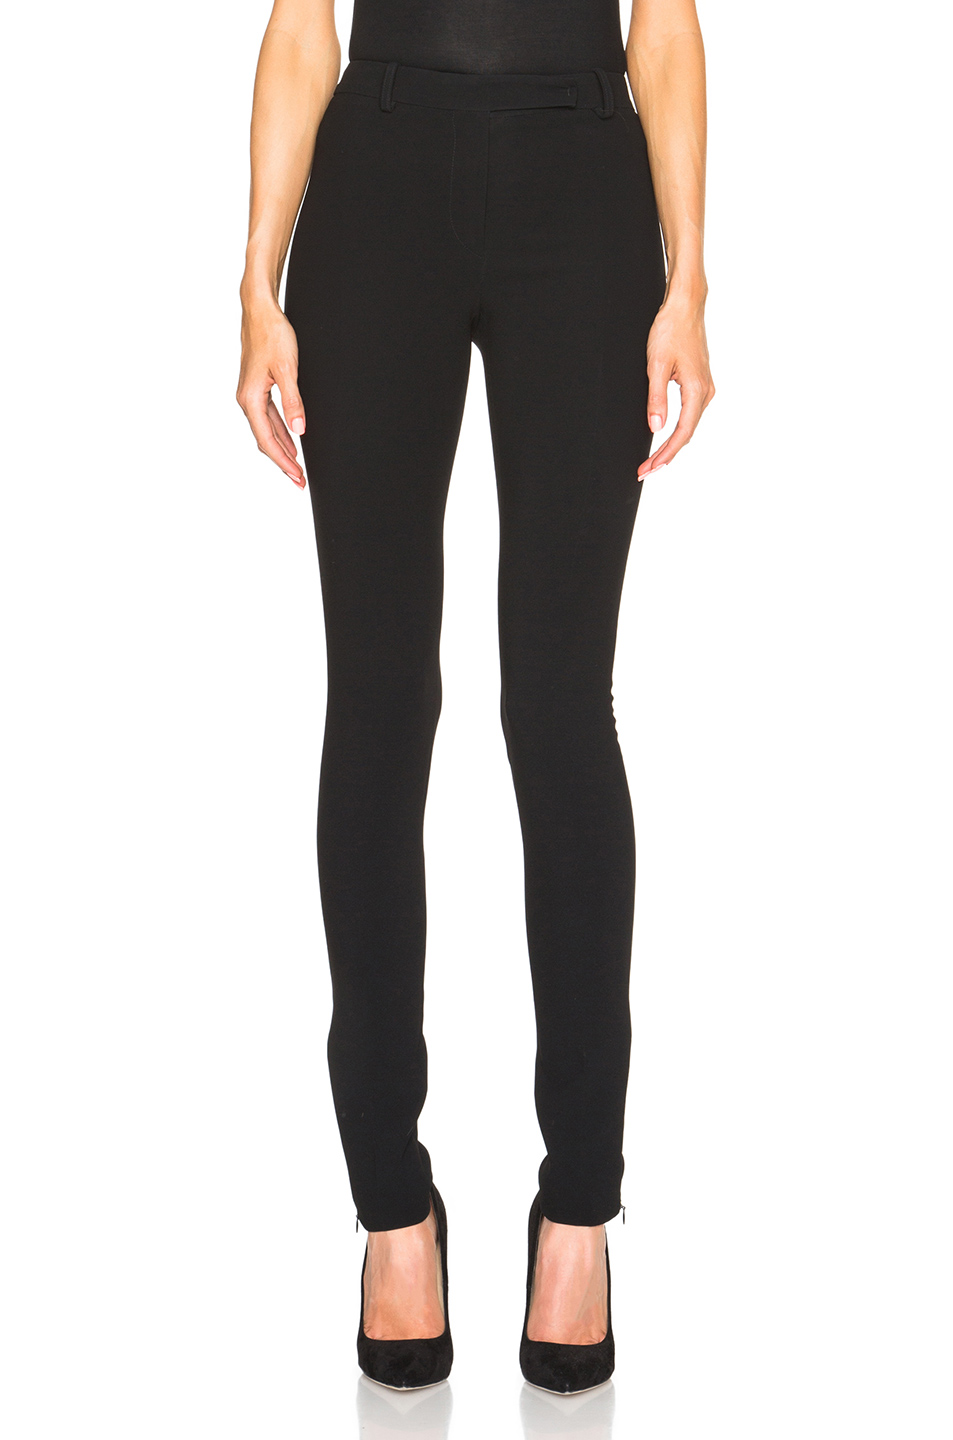 Henri Skinny Pants, Black